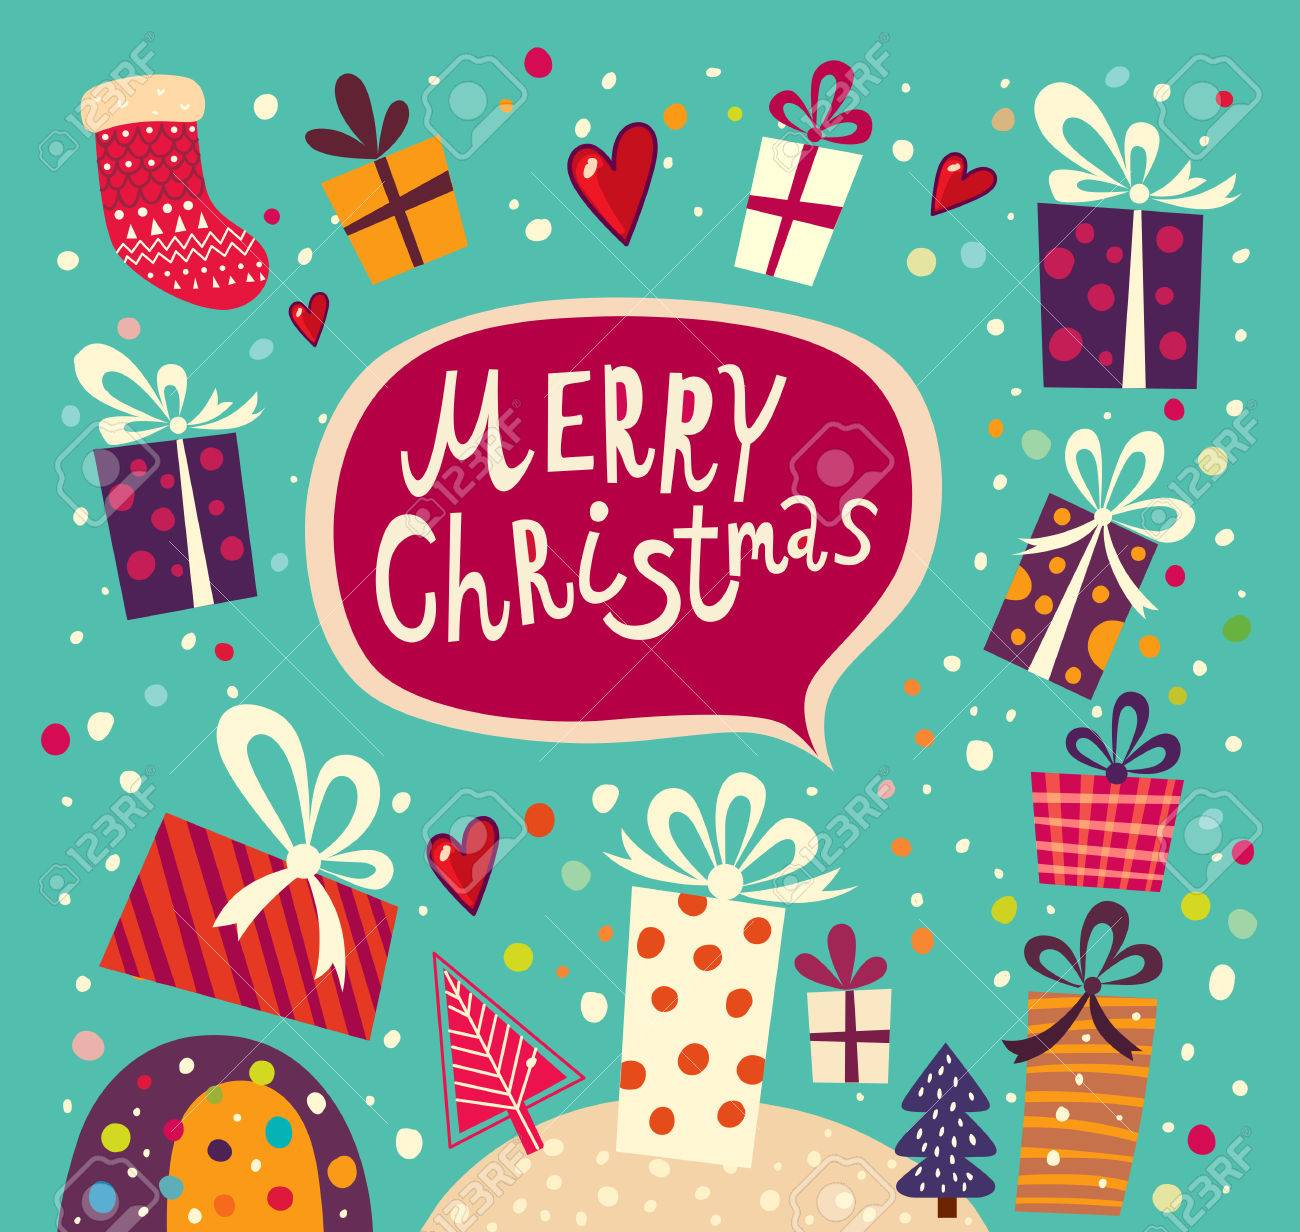 Christmas Card With Gift Boxes Royalty Free Cliparts, Vectors, And ...